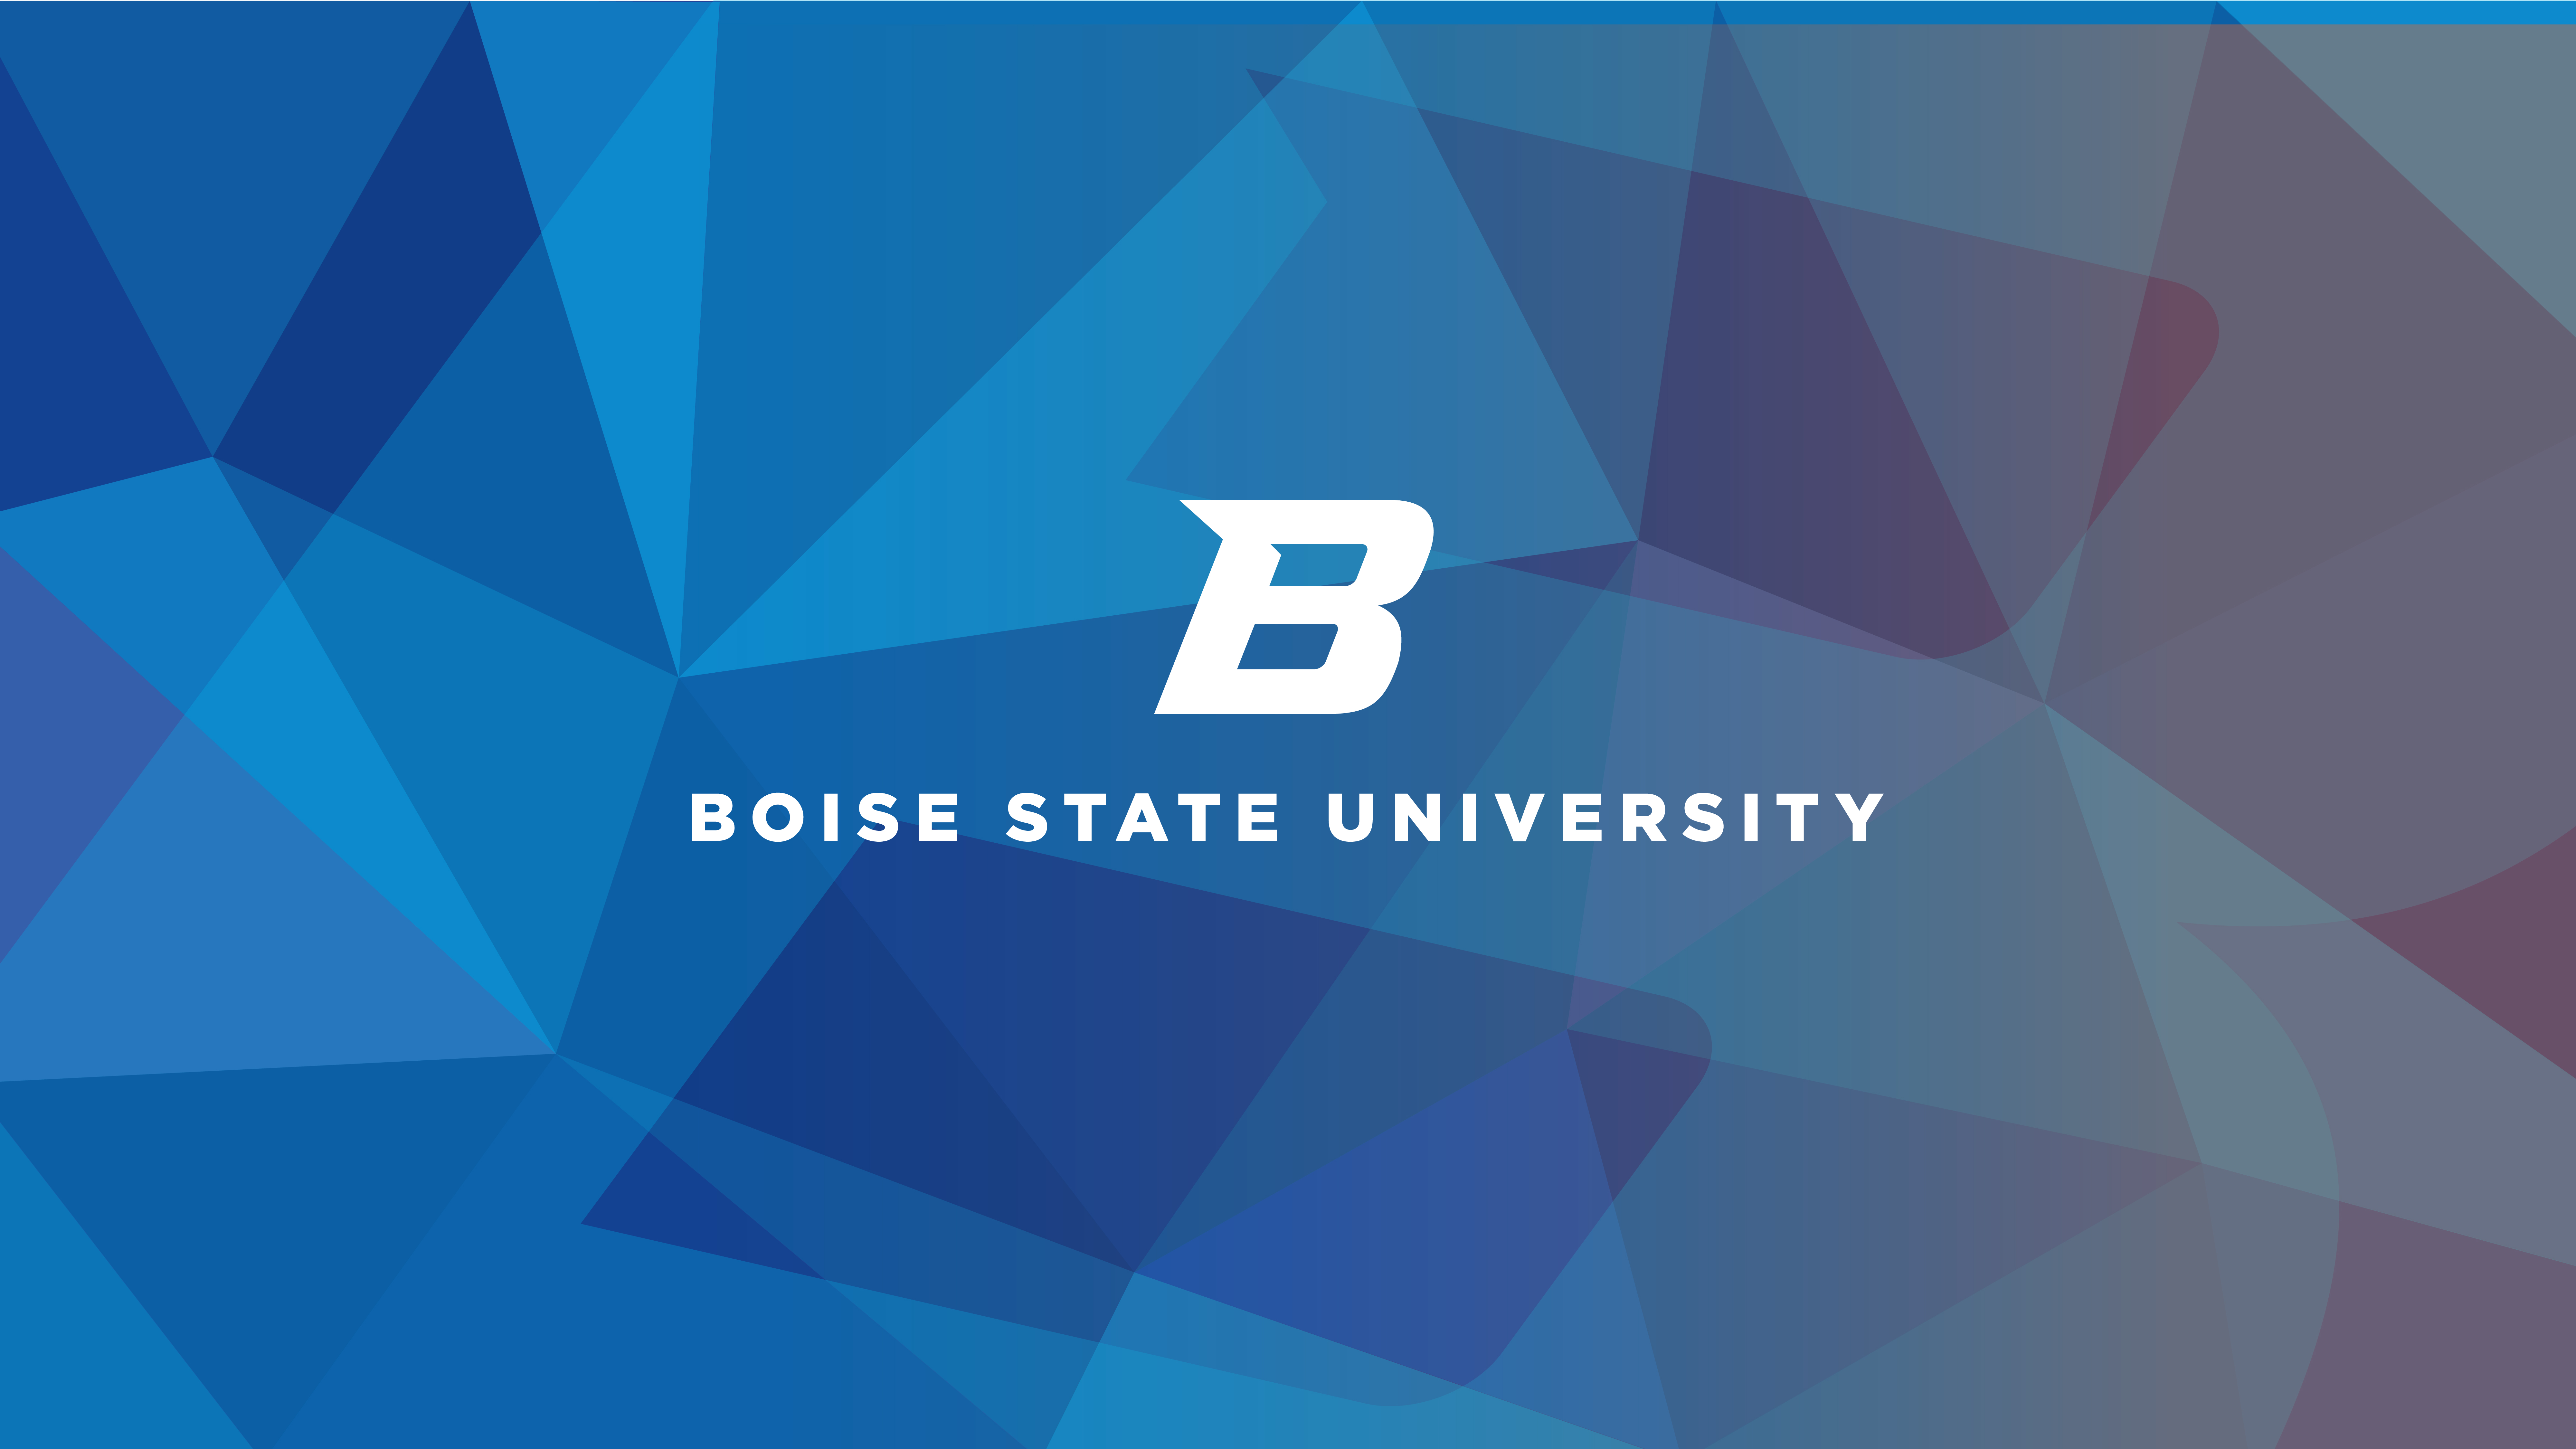 Boise State Blue Stained Glass Wallpaper